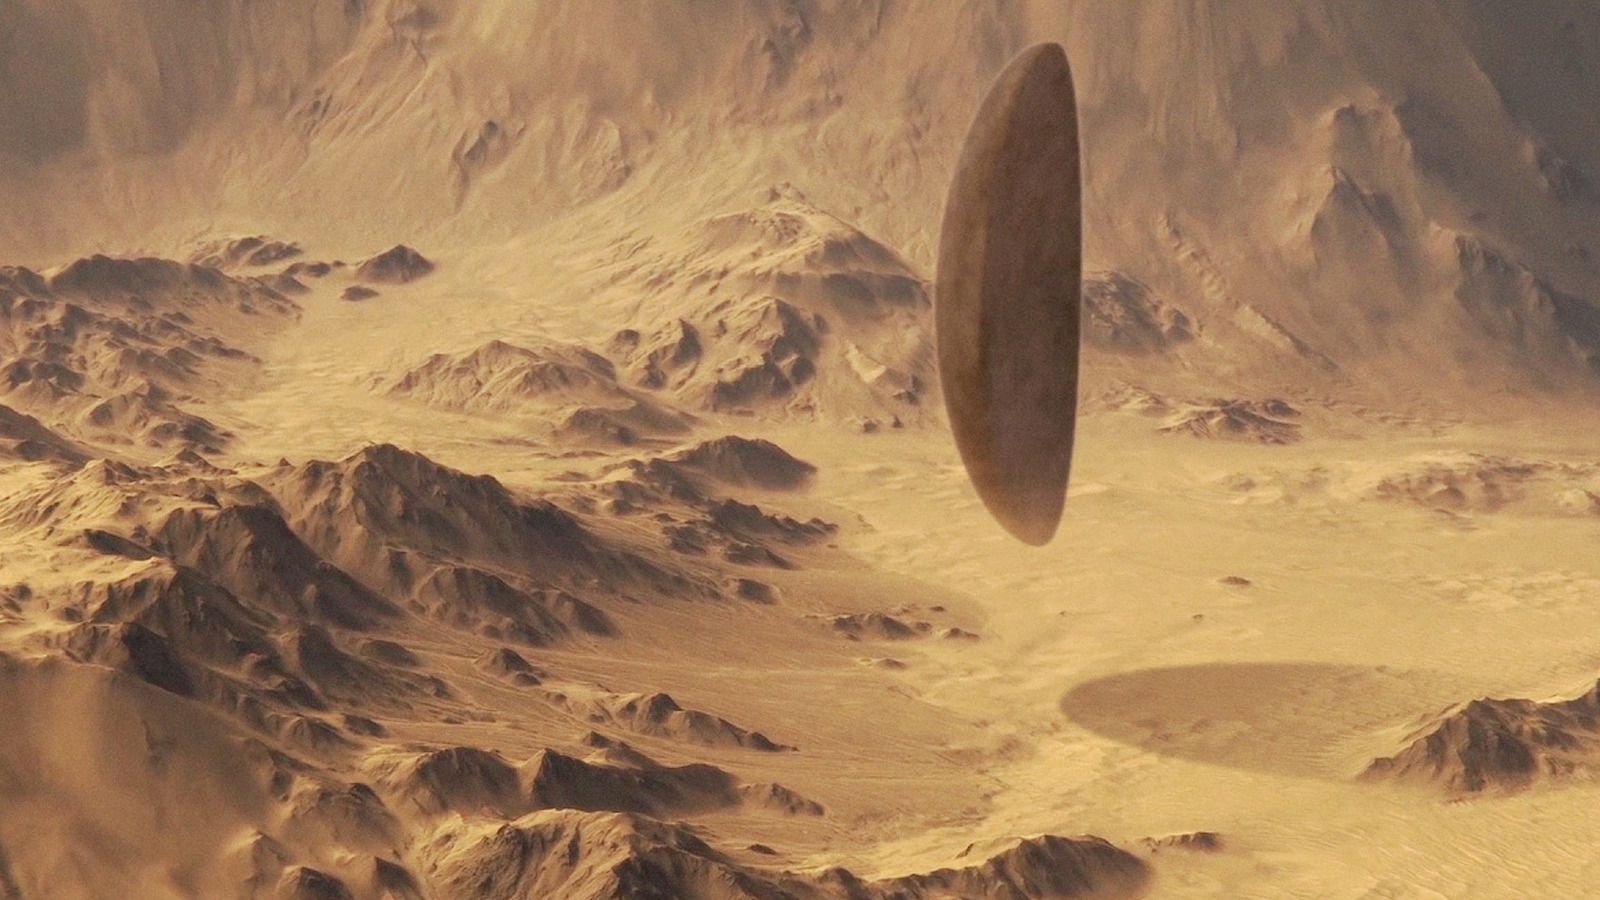 👽 Alien Spacecraft Filmed by NASA Mars Helicopter (CGI)